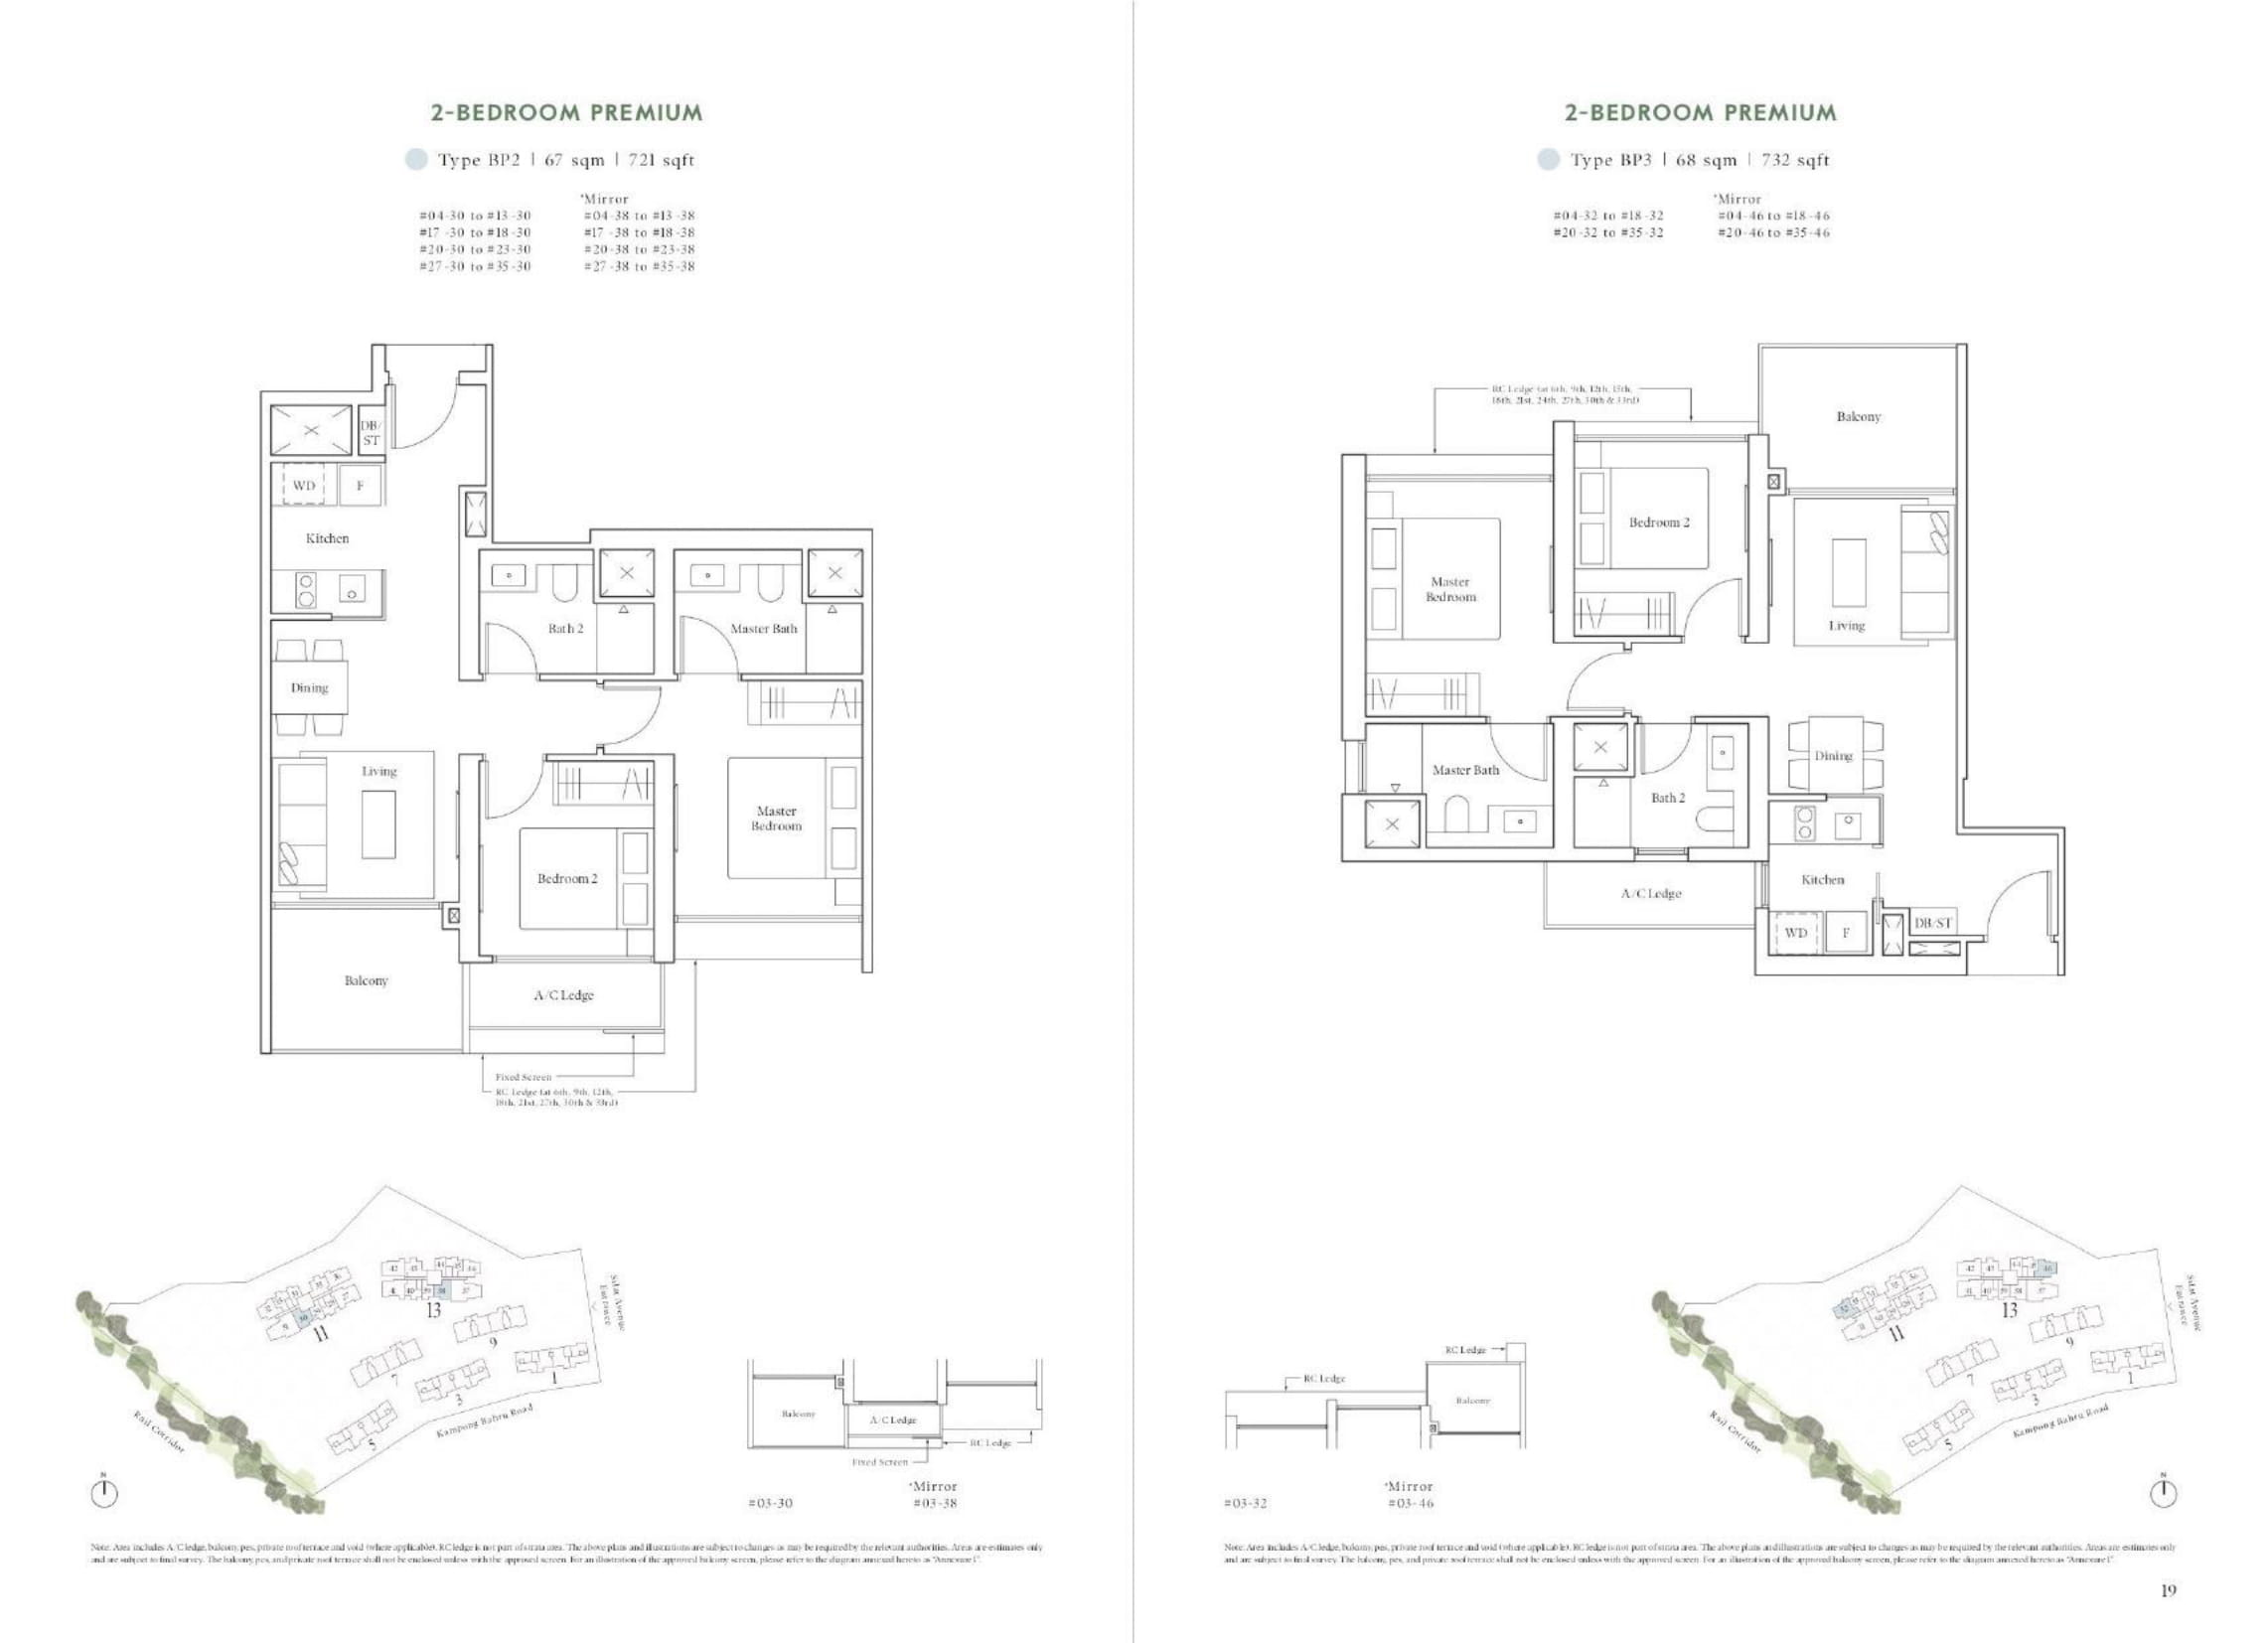 Avenue South Residence's Horizon Collection two-bedroom & two bedroom premium types